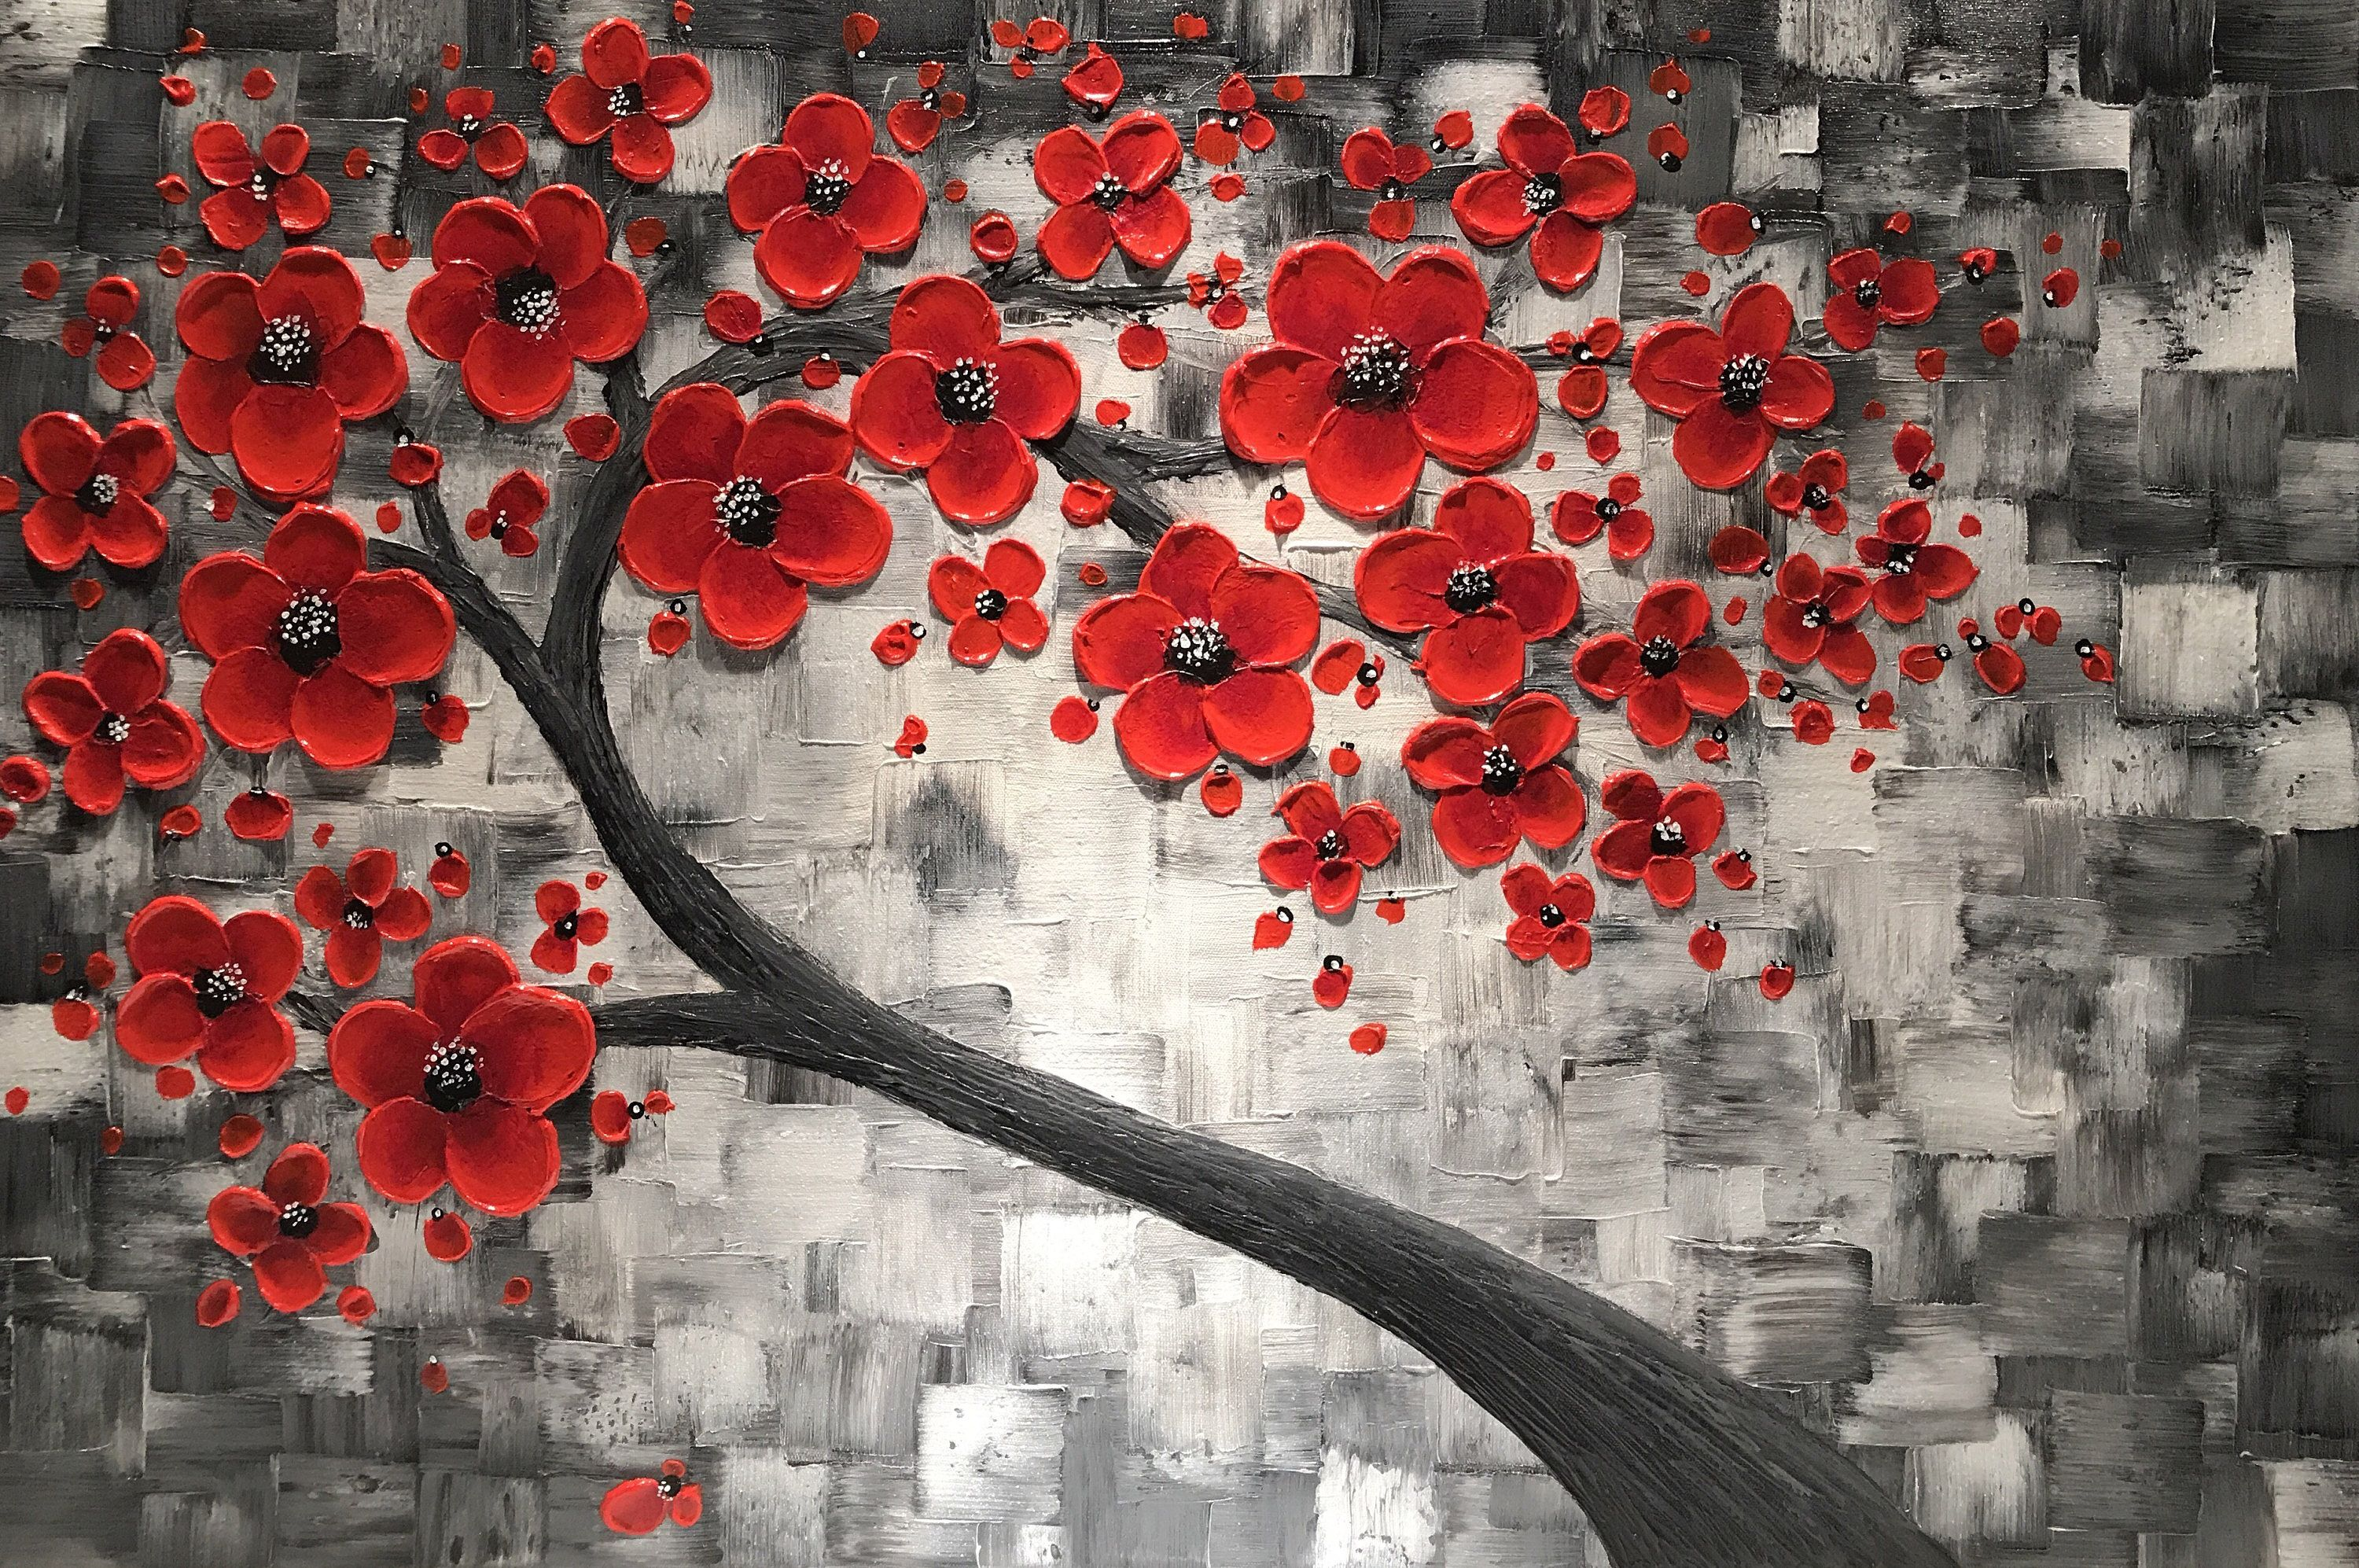 Red Cherry Blossom Tree Painting Large Impasto Abstract Art Etsy Tree Painting Abstract Tree Painting Painting